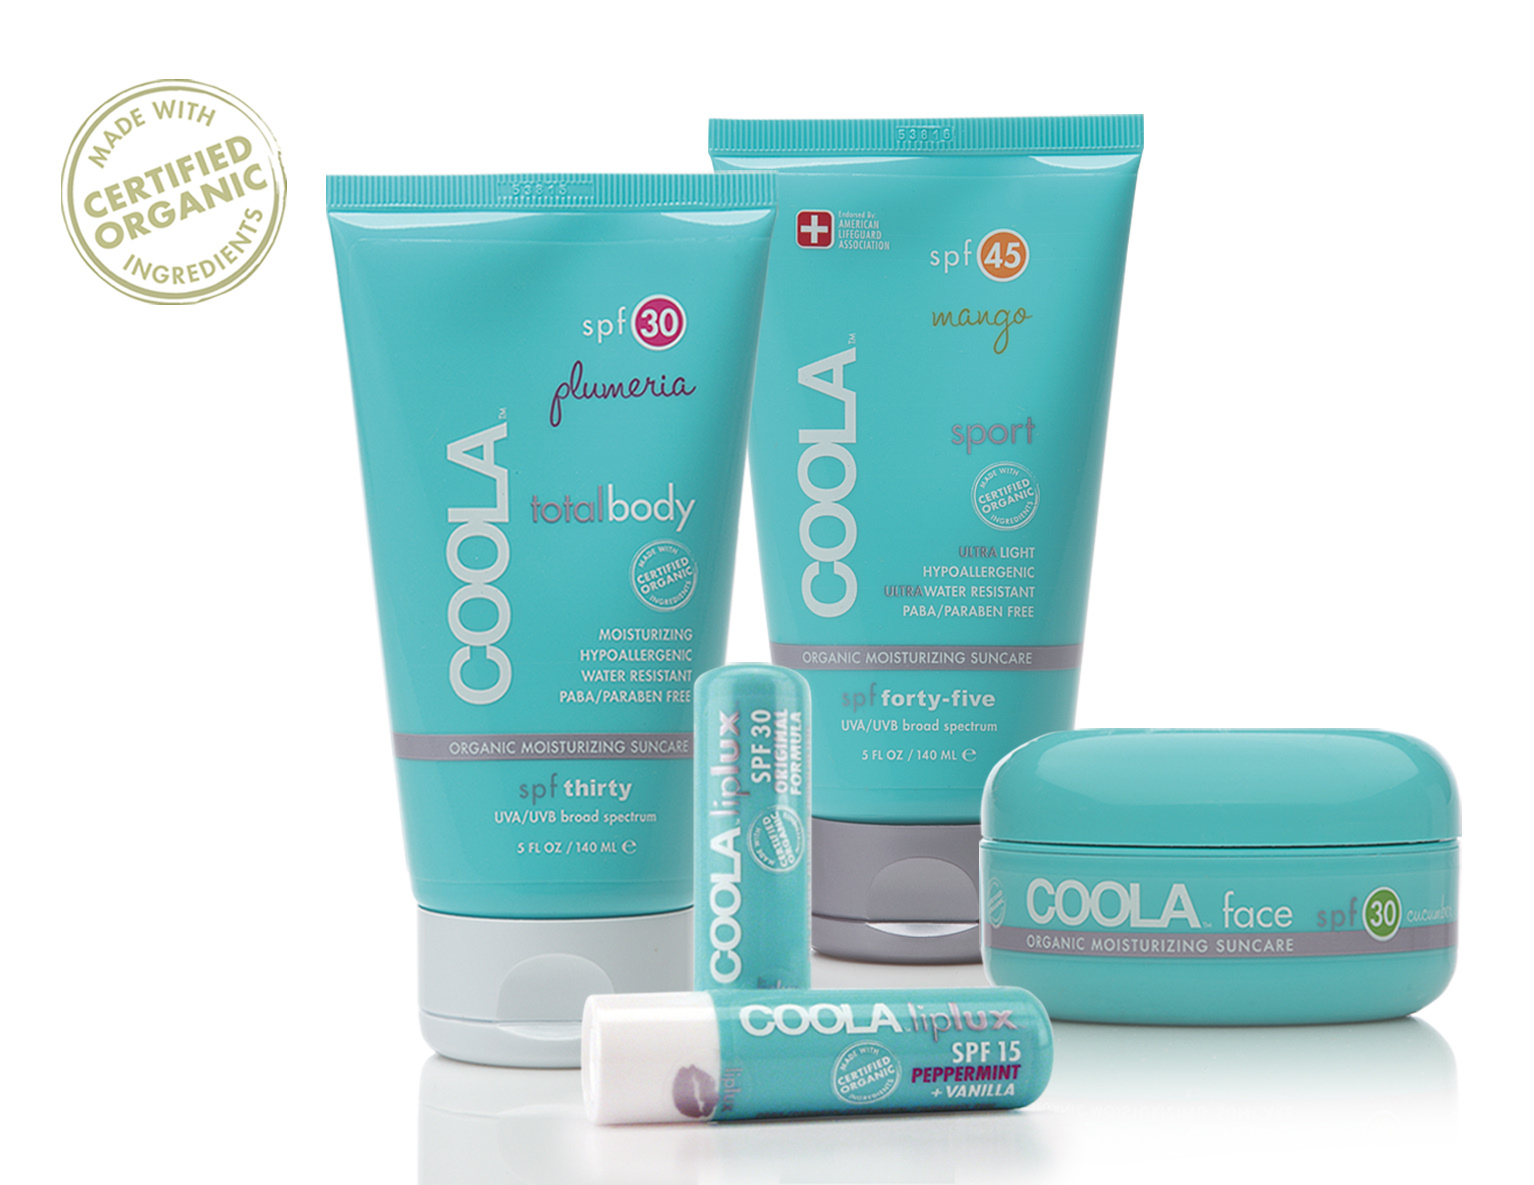 Coola sun care products the urban clinic